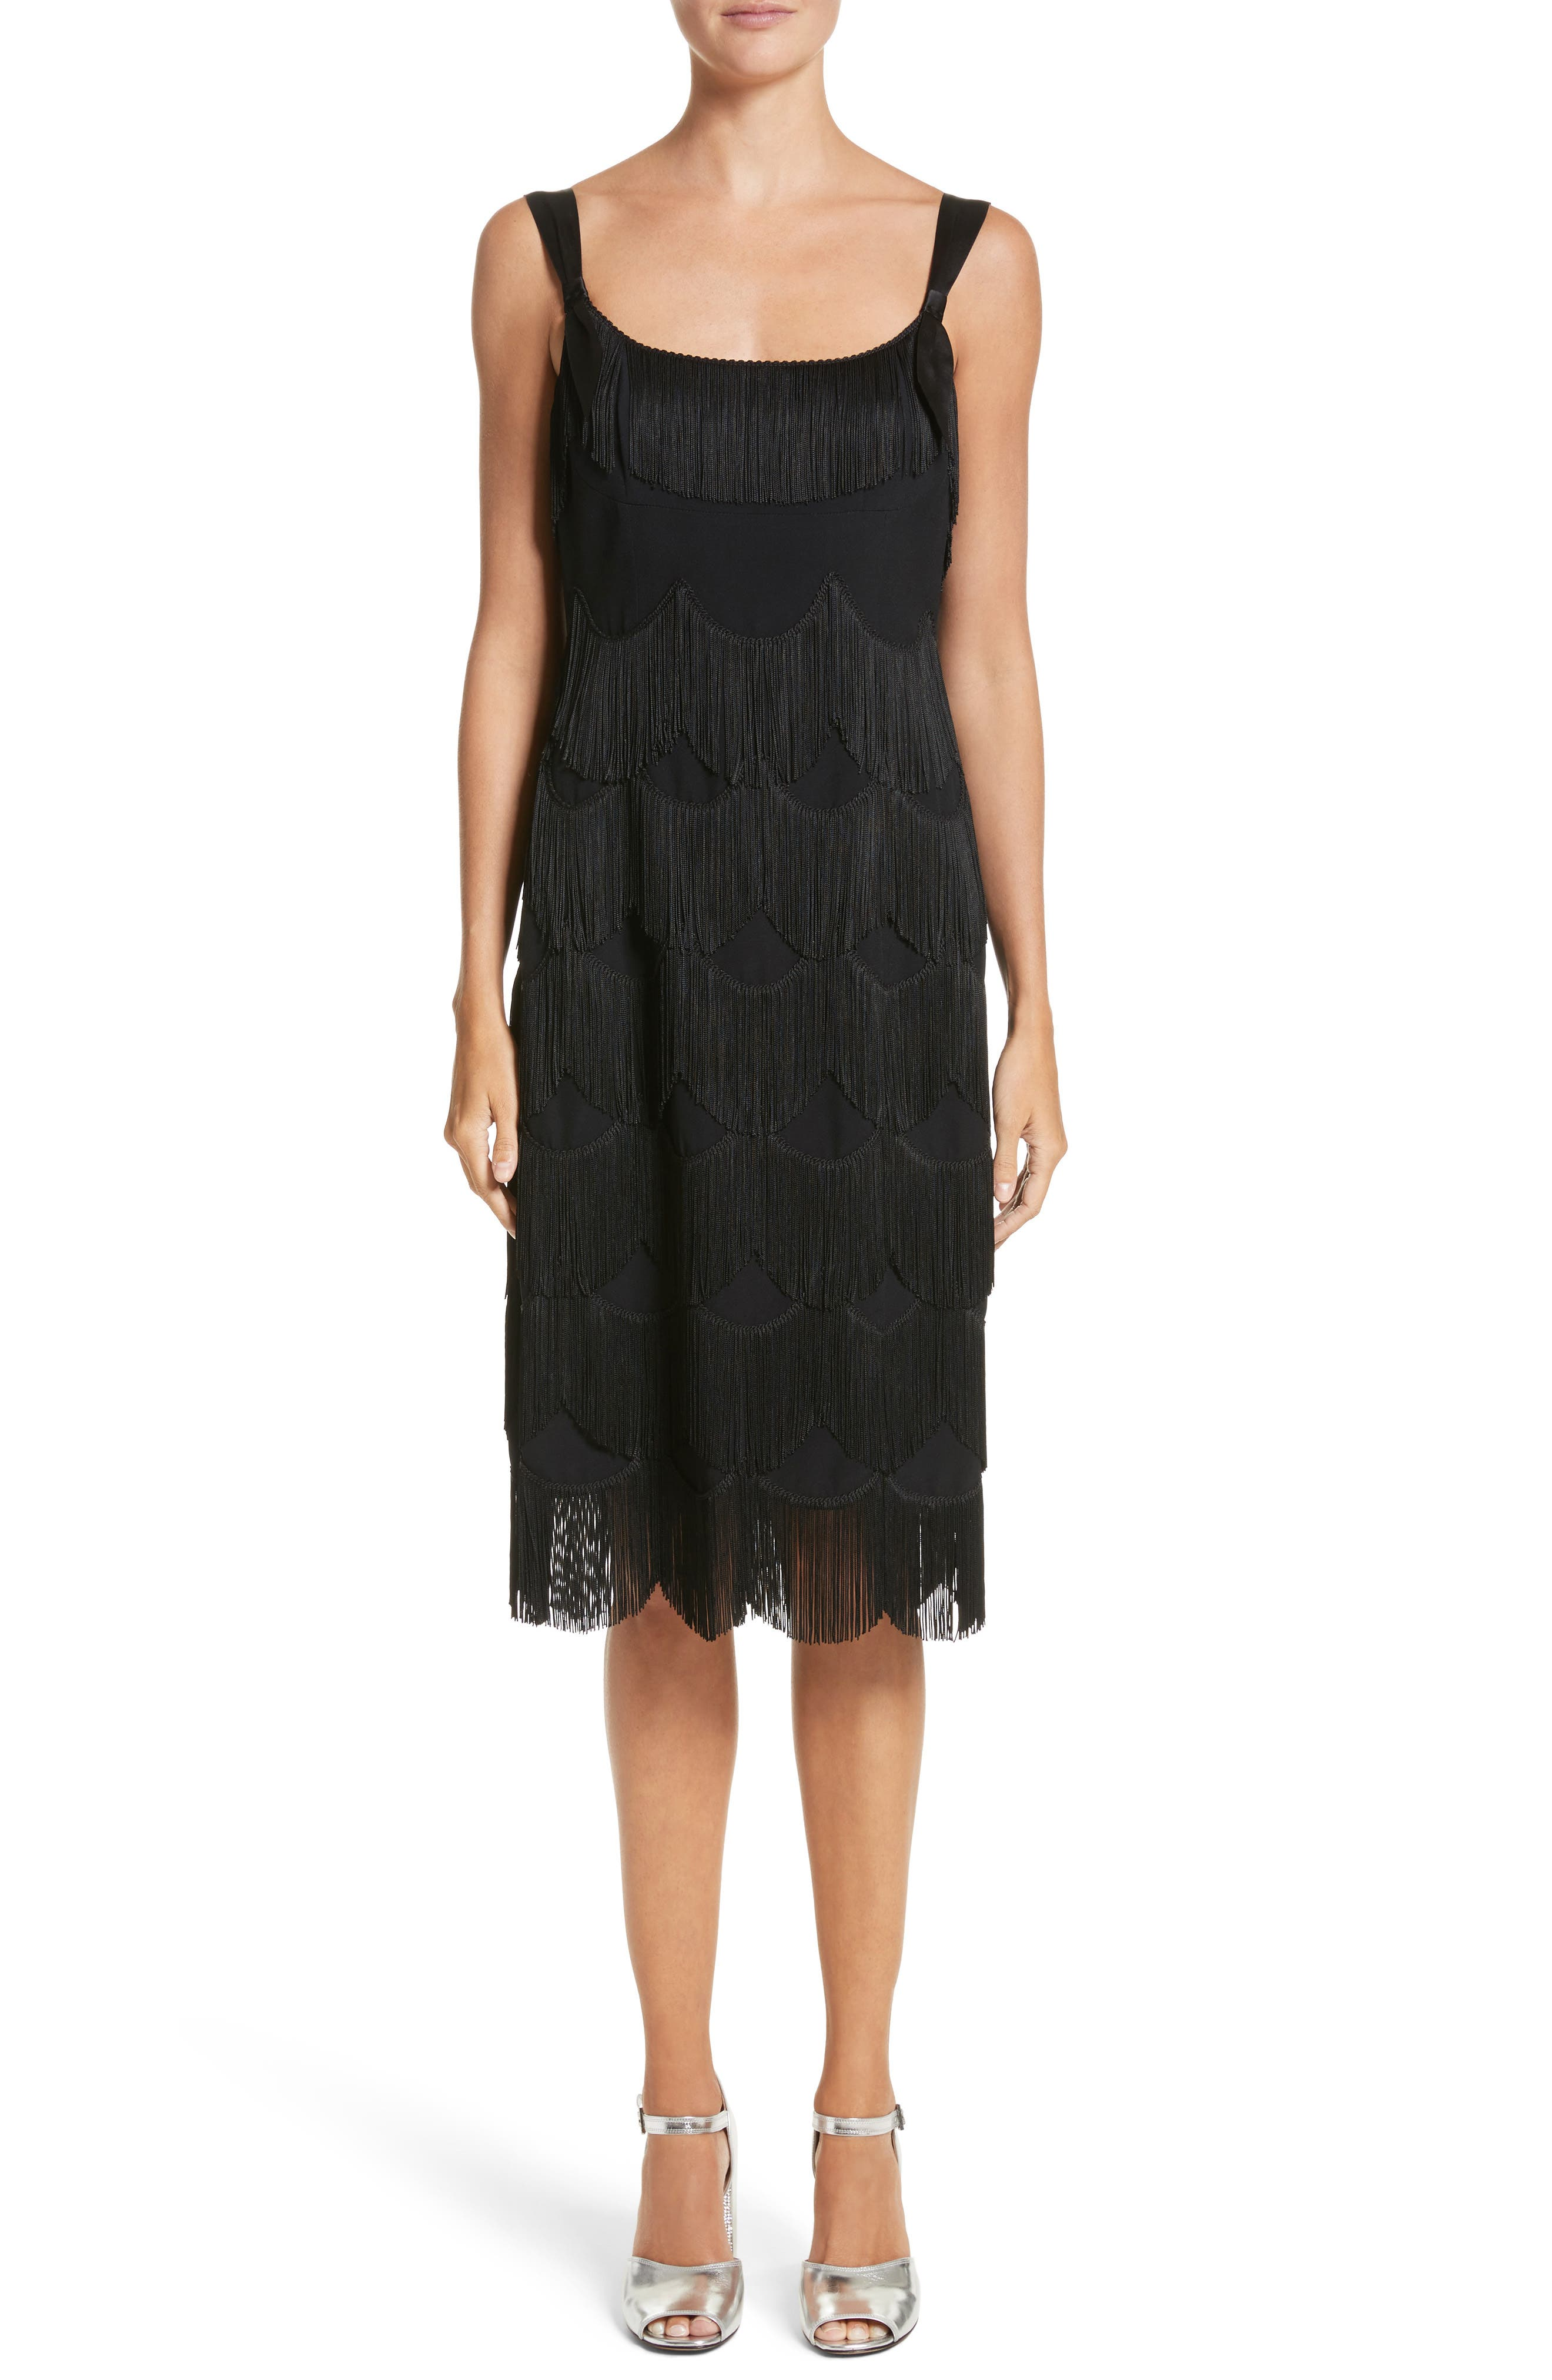 Scalloped Fringe Party Dress,                         Main,                         color, 001